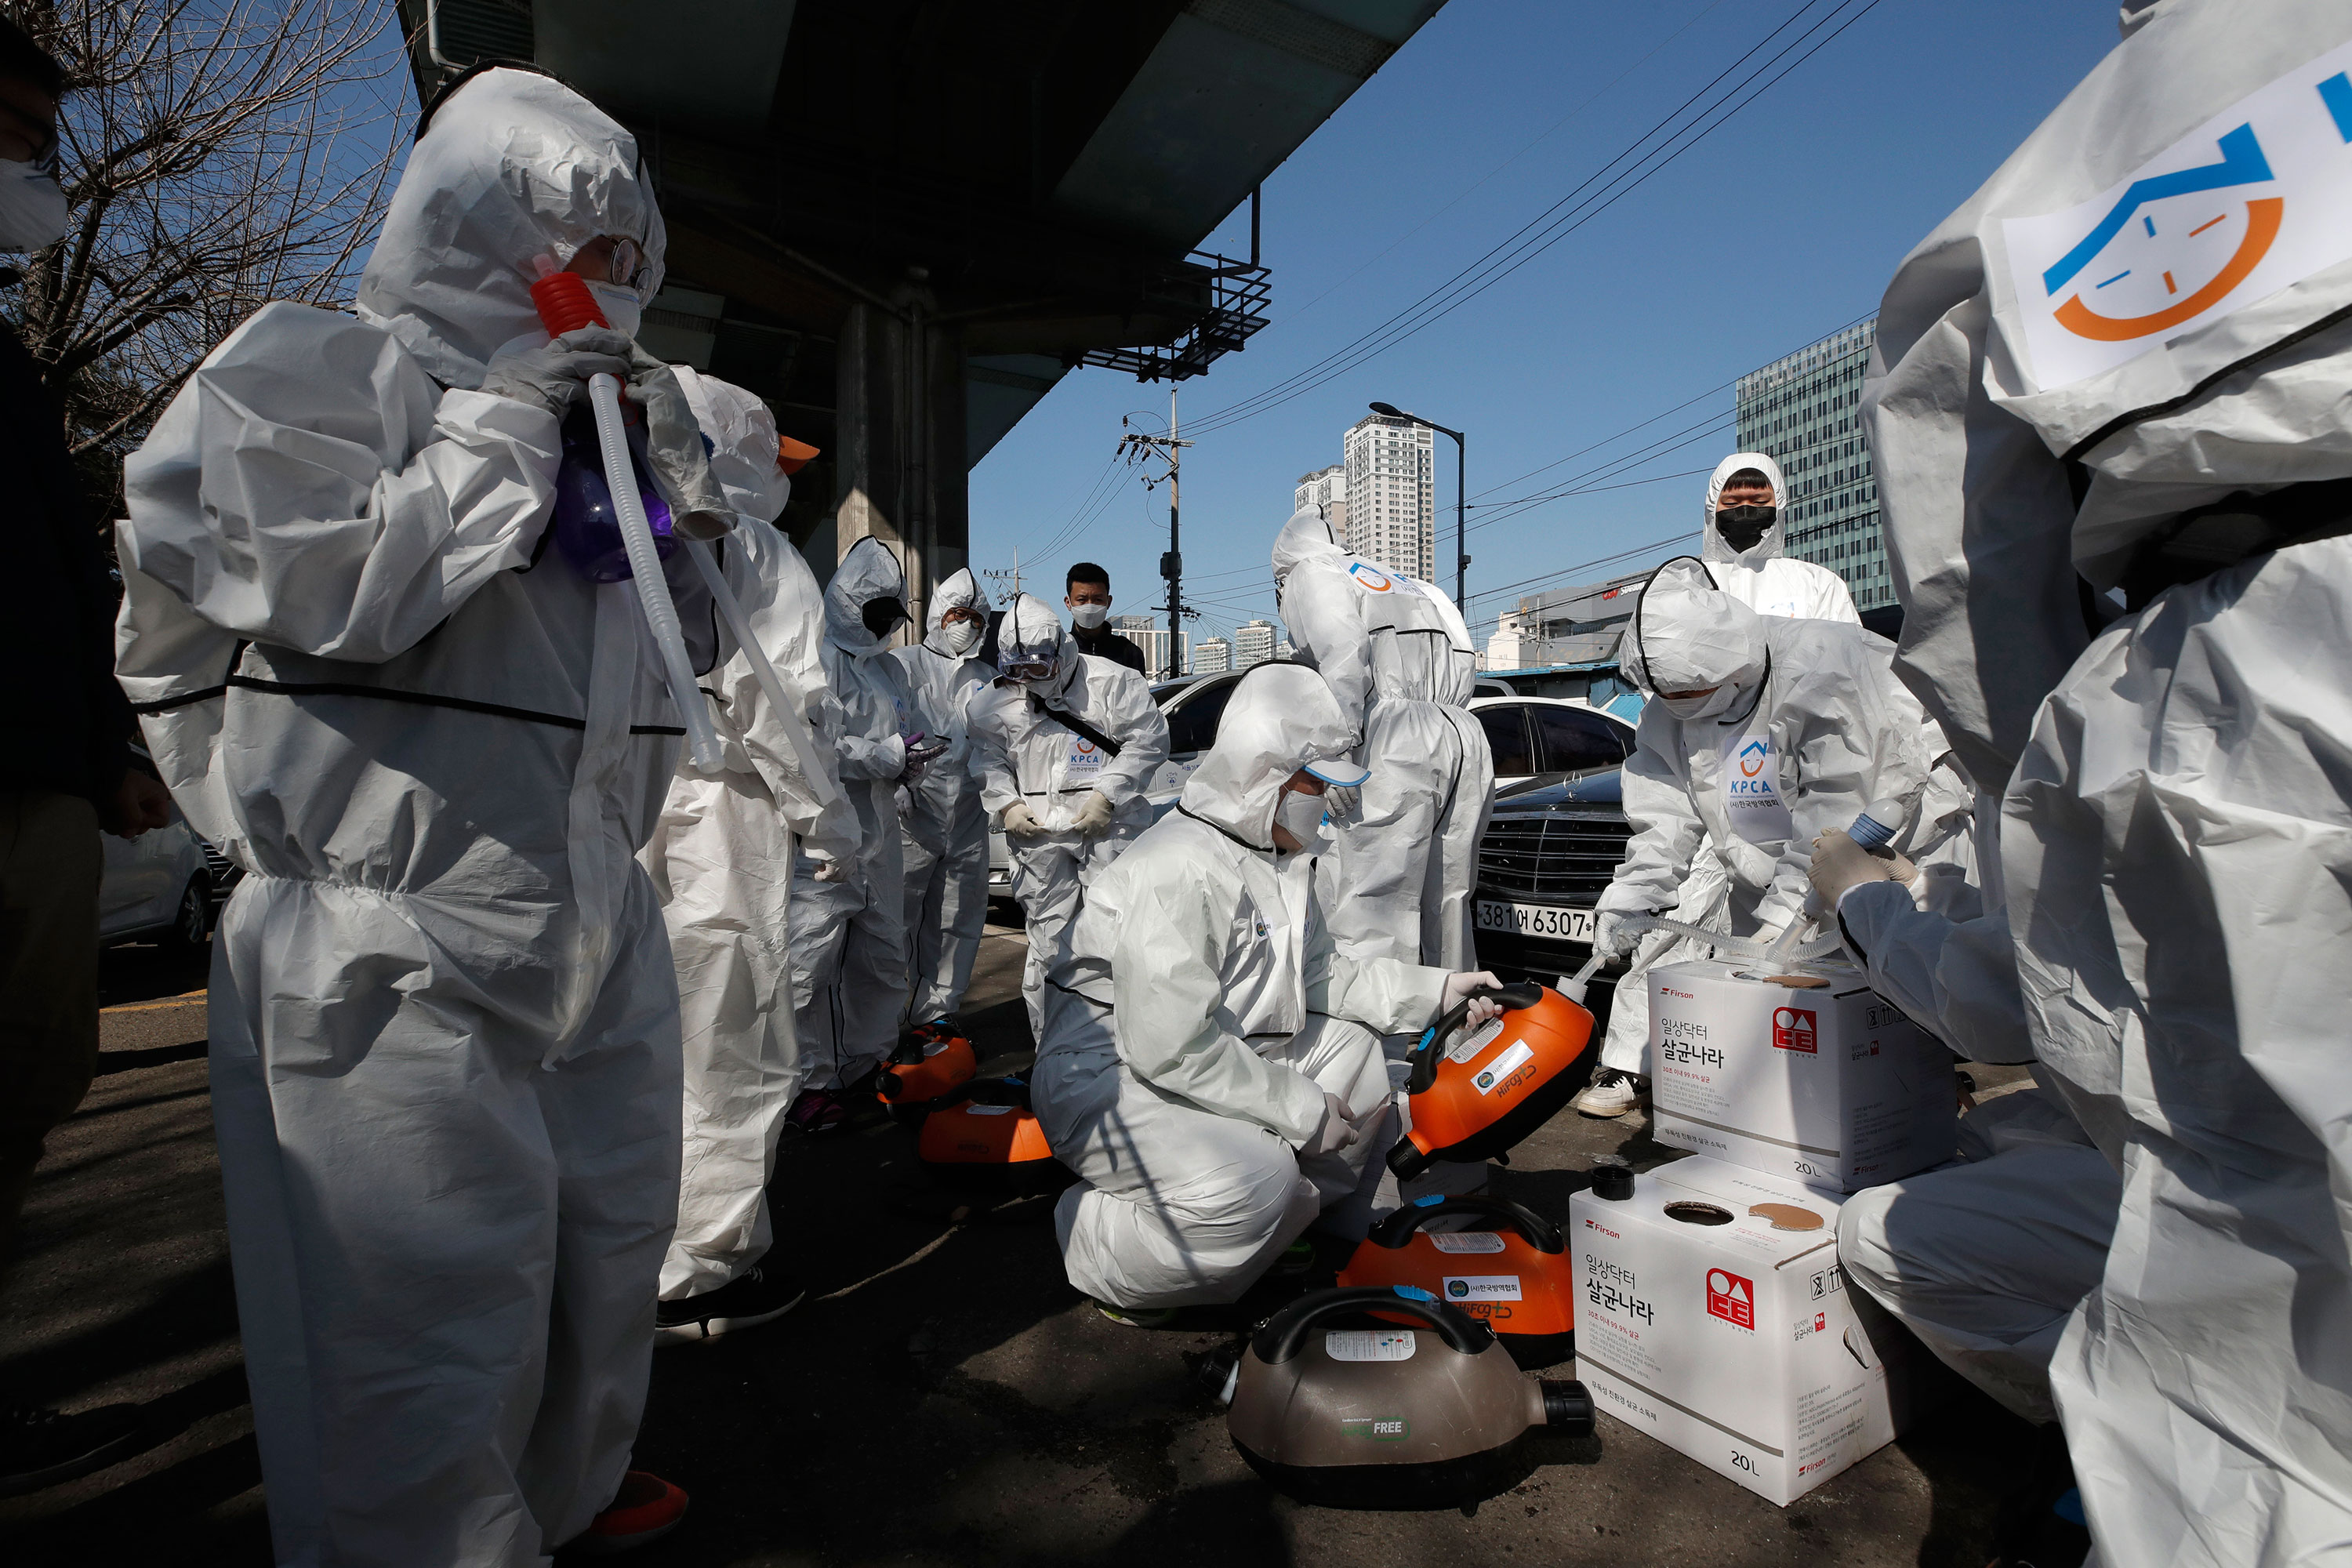 Workers prepare to spray disinfectant as a precaution against coronavirus in Seoul, South Korea on March 16.